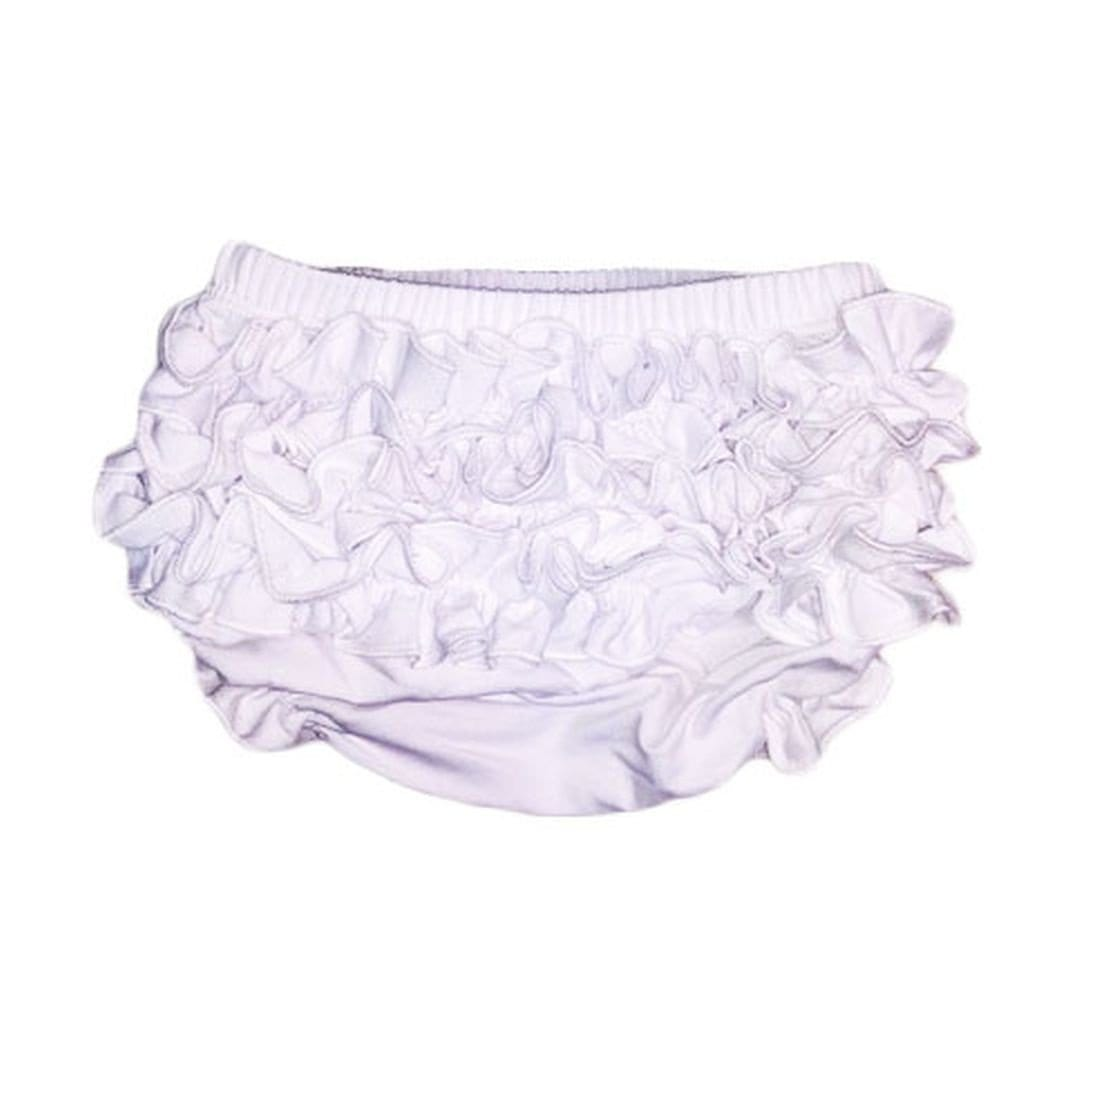 ES Kids White Baby Bloomers